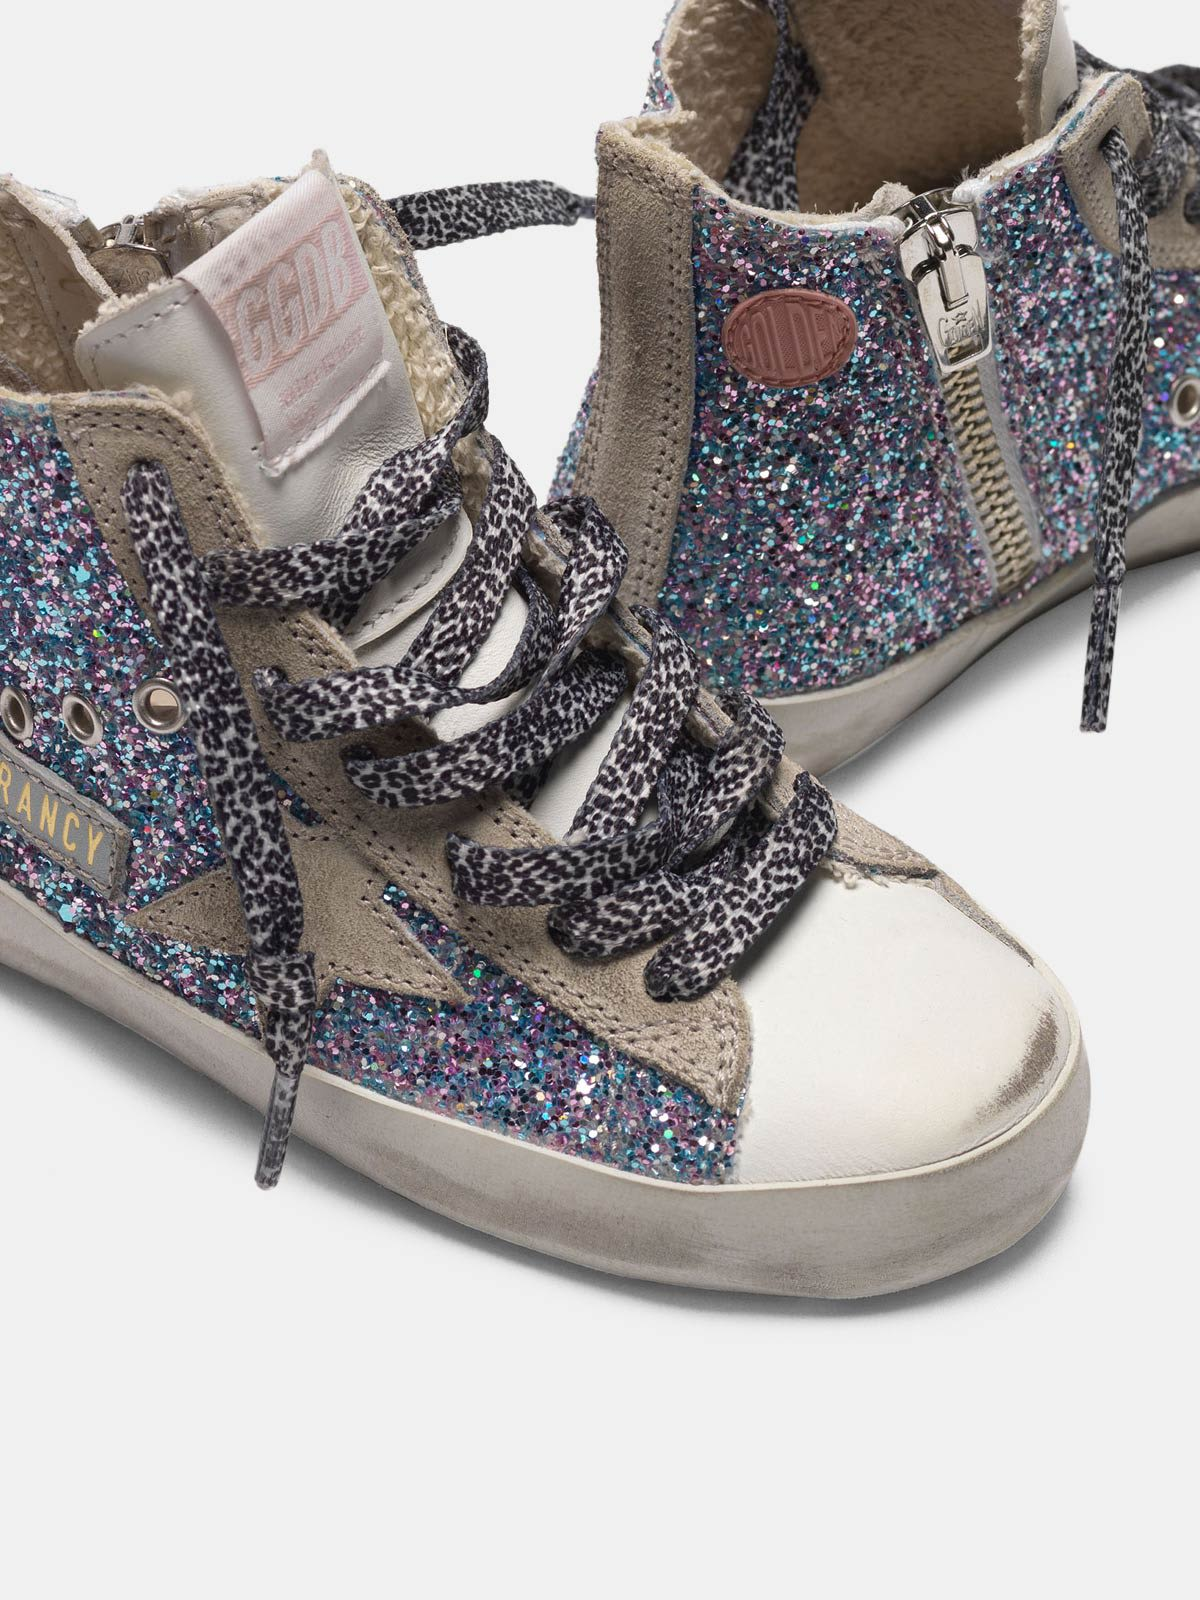 White Francy sneakers in leather with multicoloured glitter